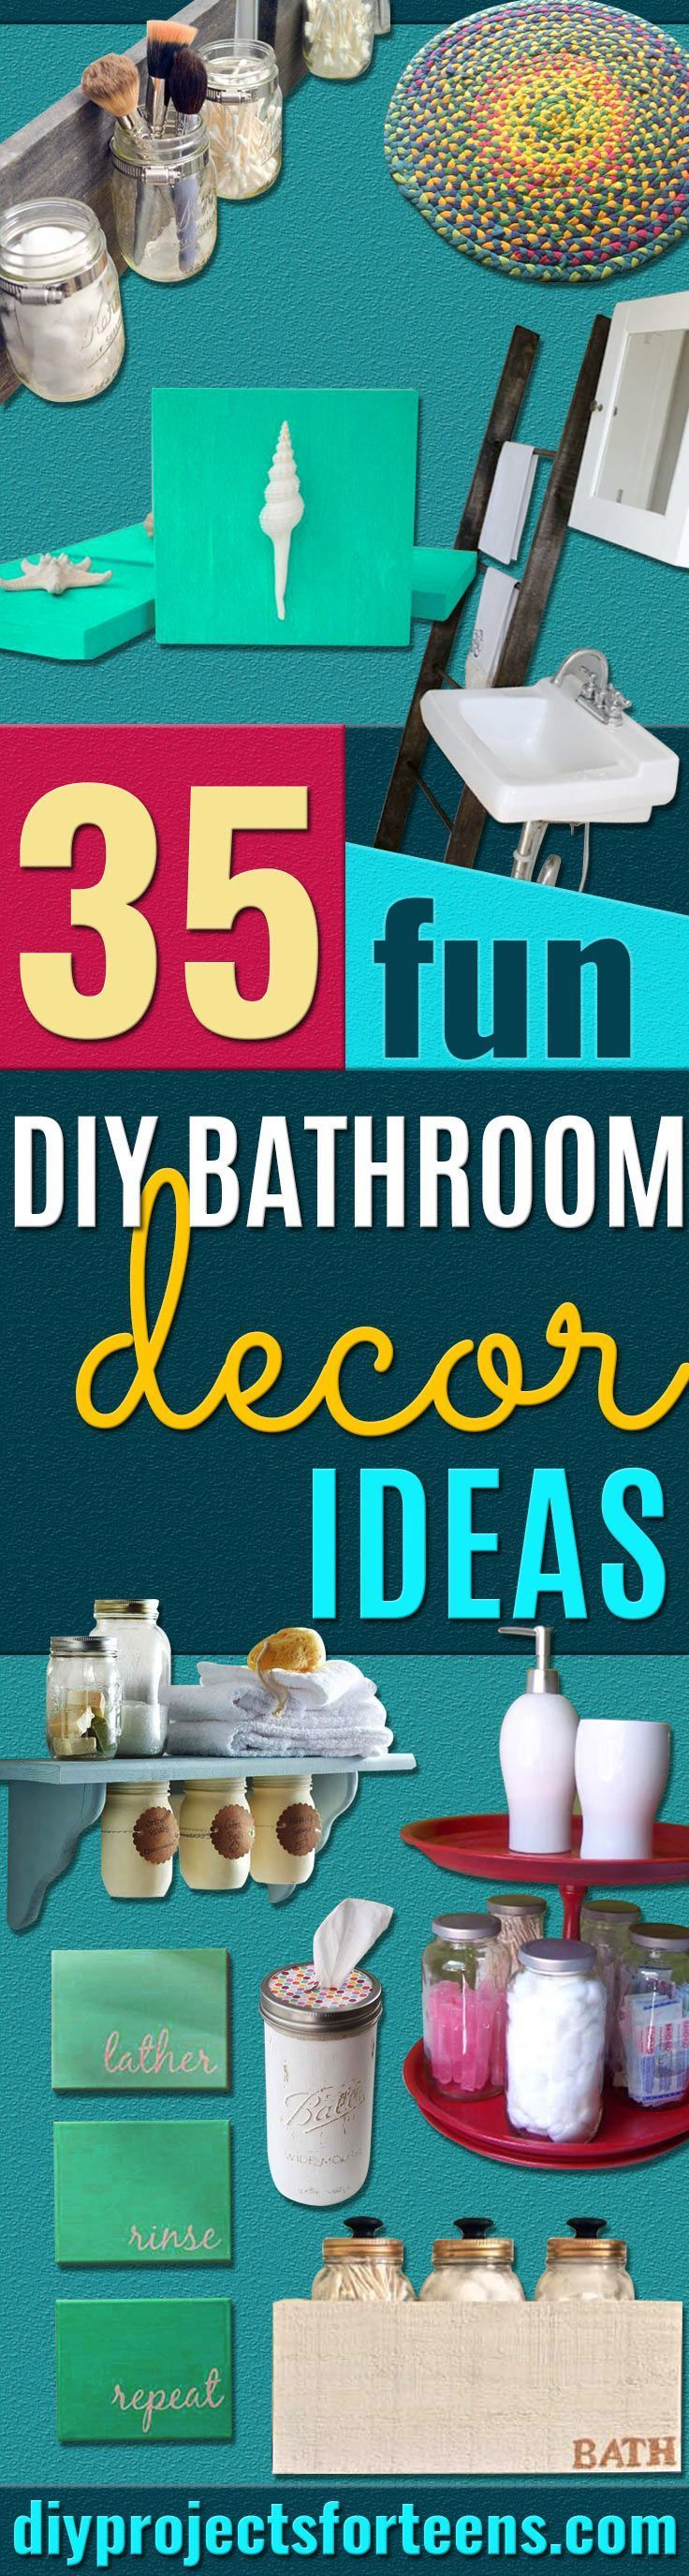 1000 Images About Diy For Teens On Pinterest Diy